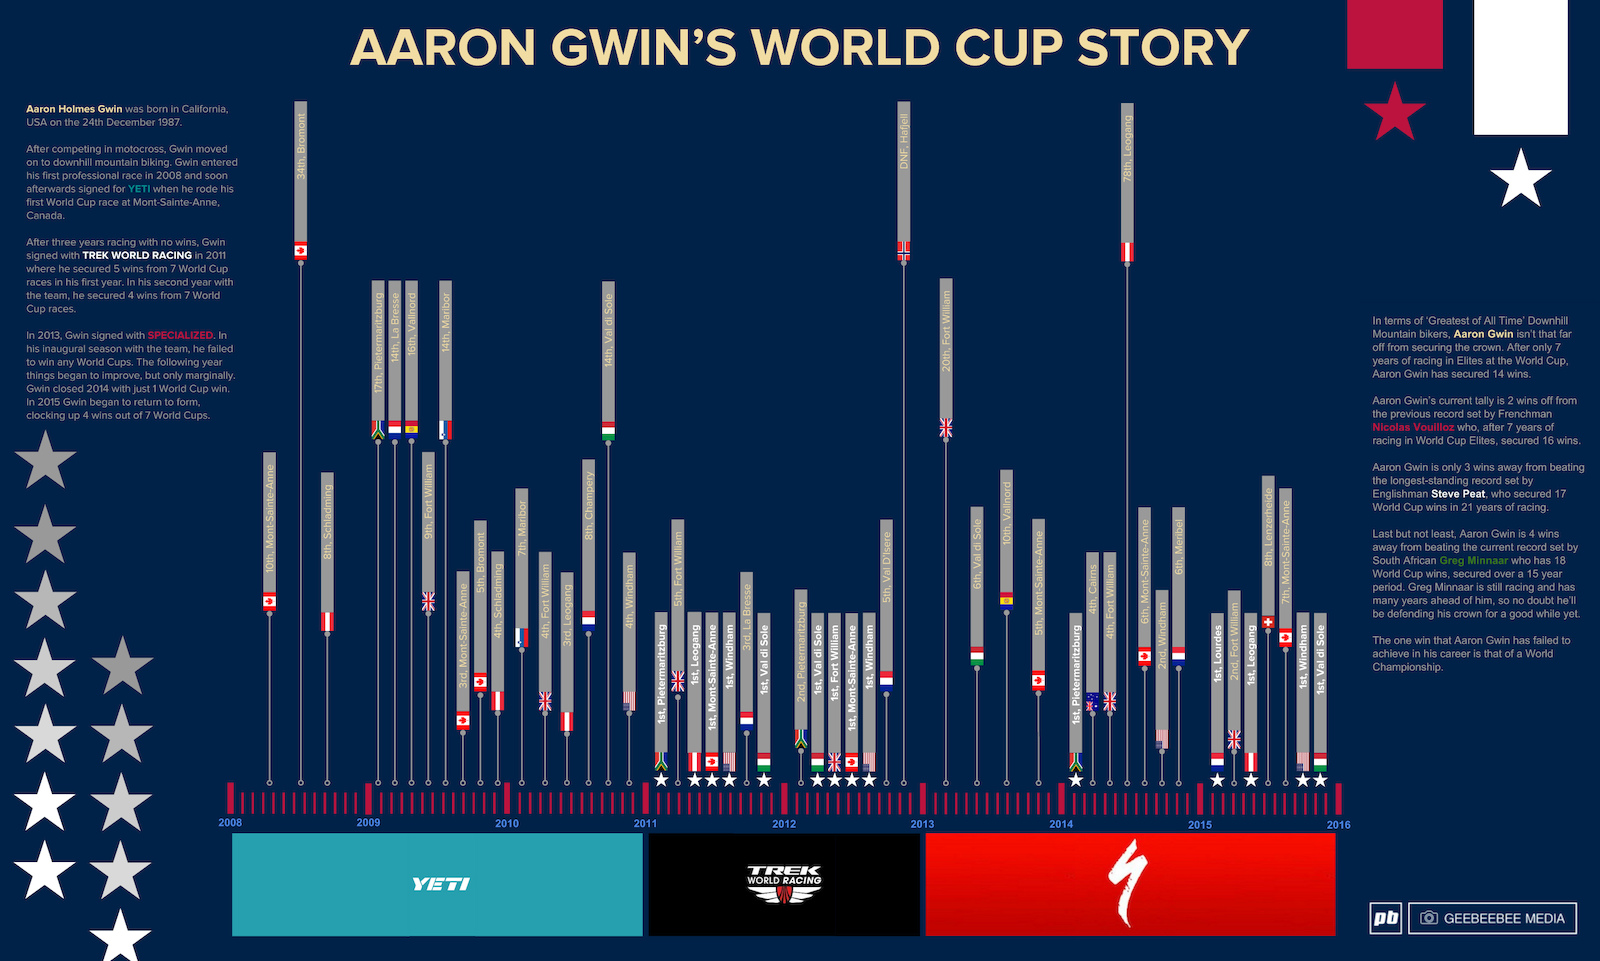 Aaron Gwin s World Cup Story Infographic Copyright geebeebee media